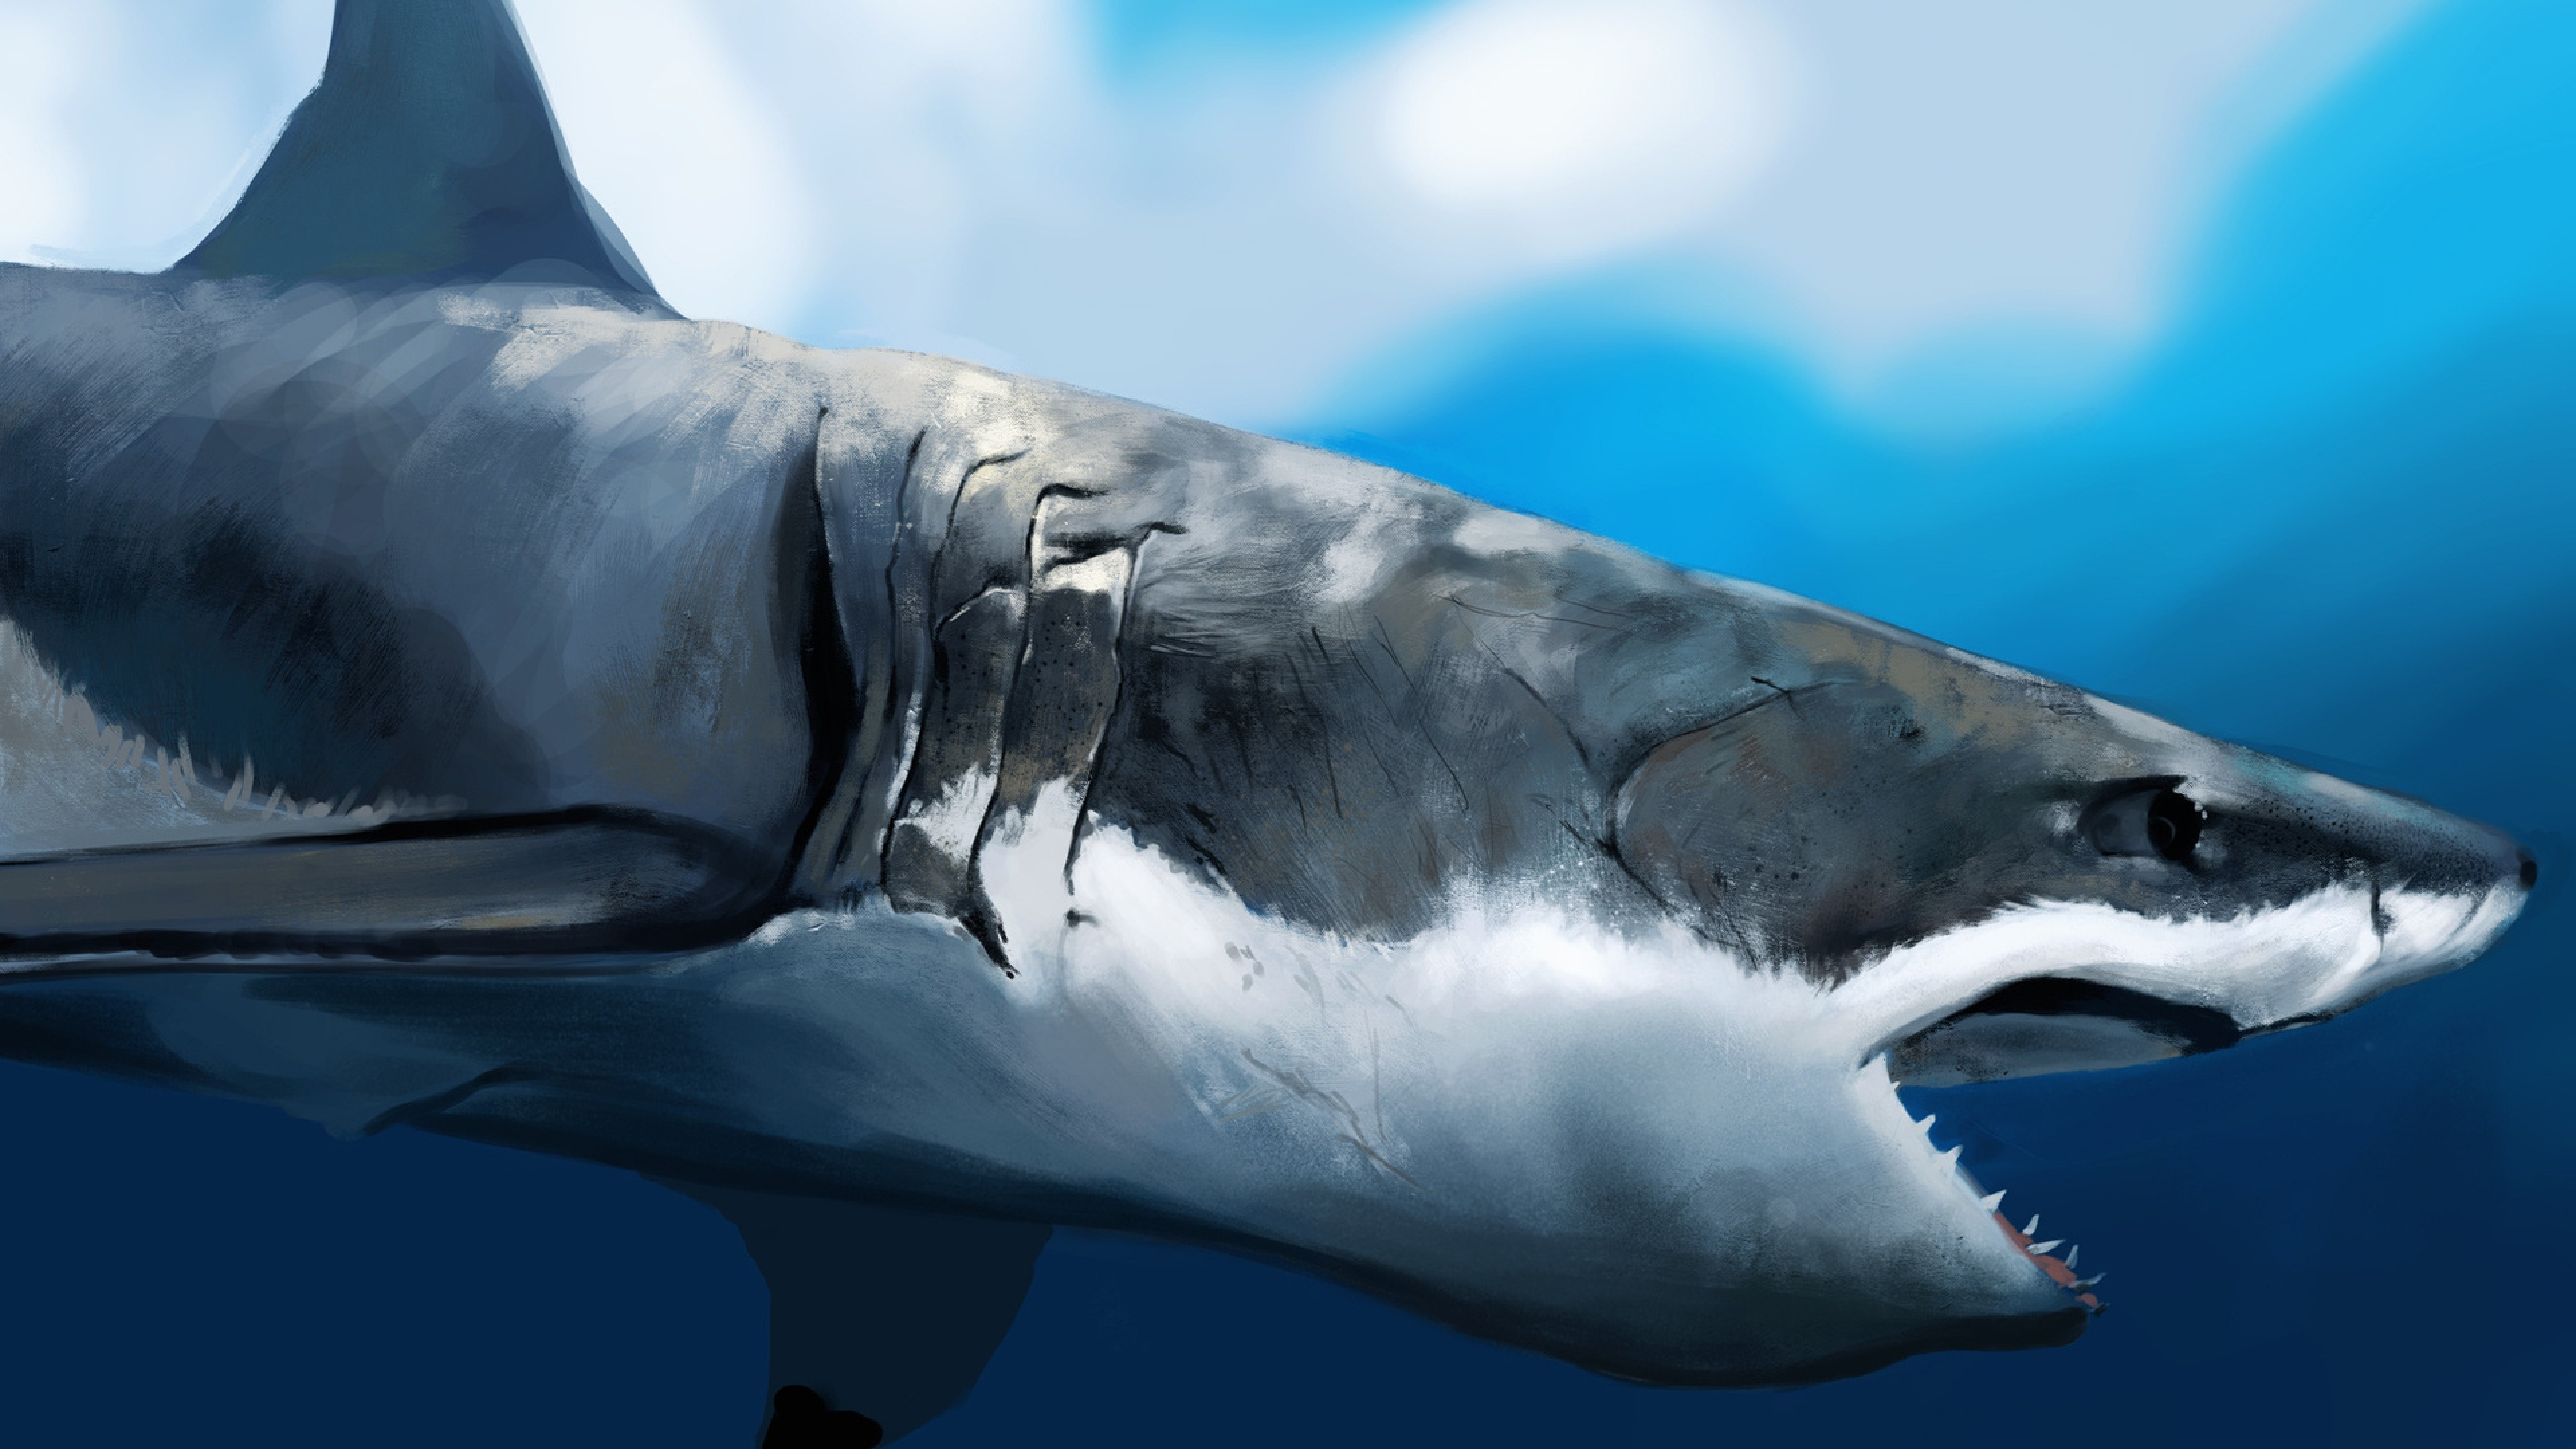 3840x2160 Wallpaper maw, shark, art, under the water, hunger, profile